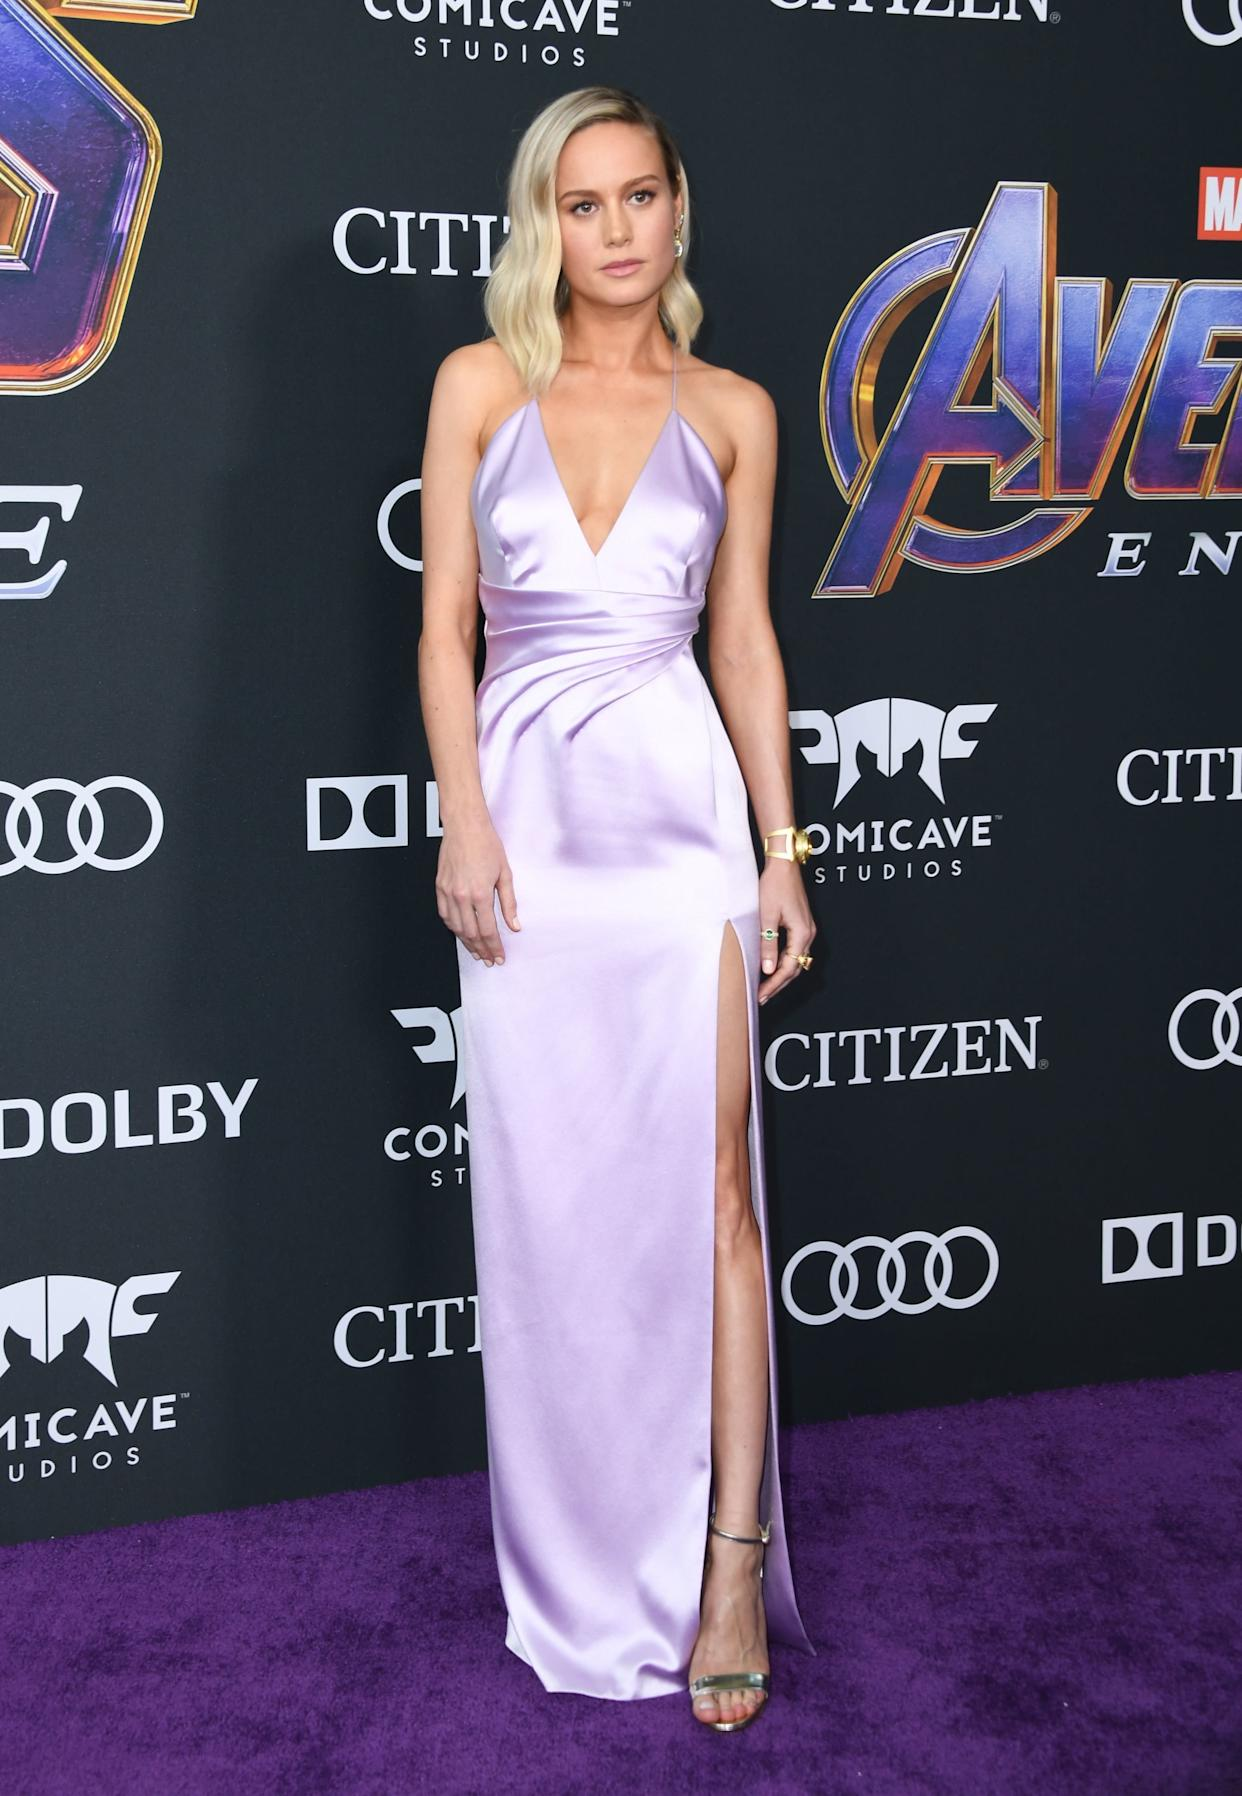 """Brie Larson wears lilac to the world premiere of Marvel Studios' """"Avengers: Endgame"""" at the Los Angeles Convention Center on Monday. (Photo: VALERIE MACON via Getty Images)"""